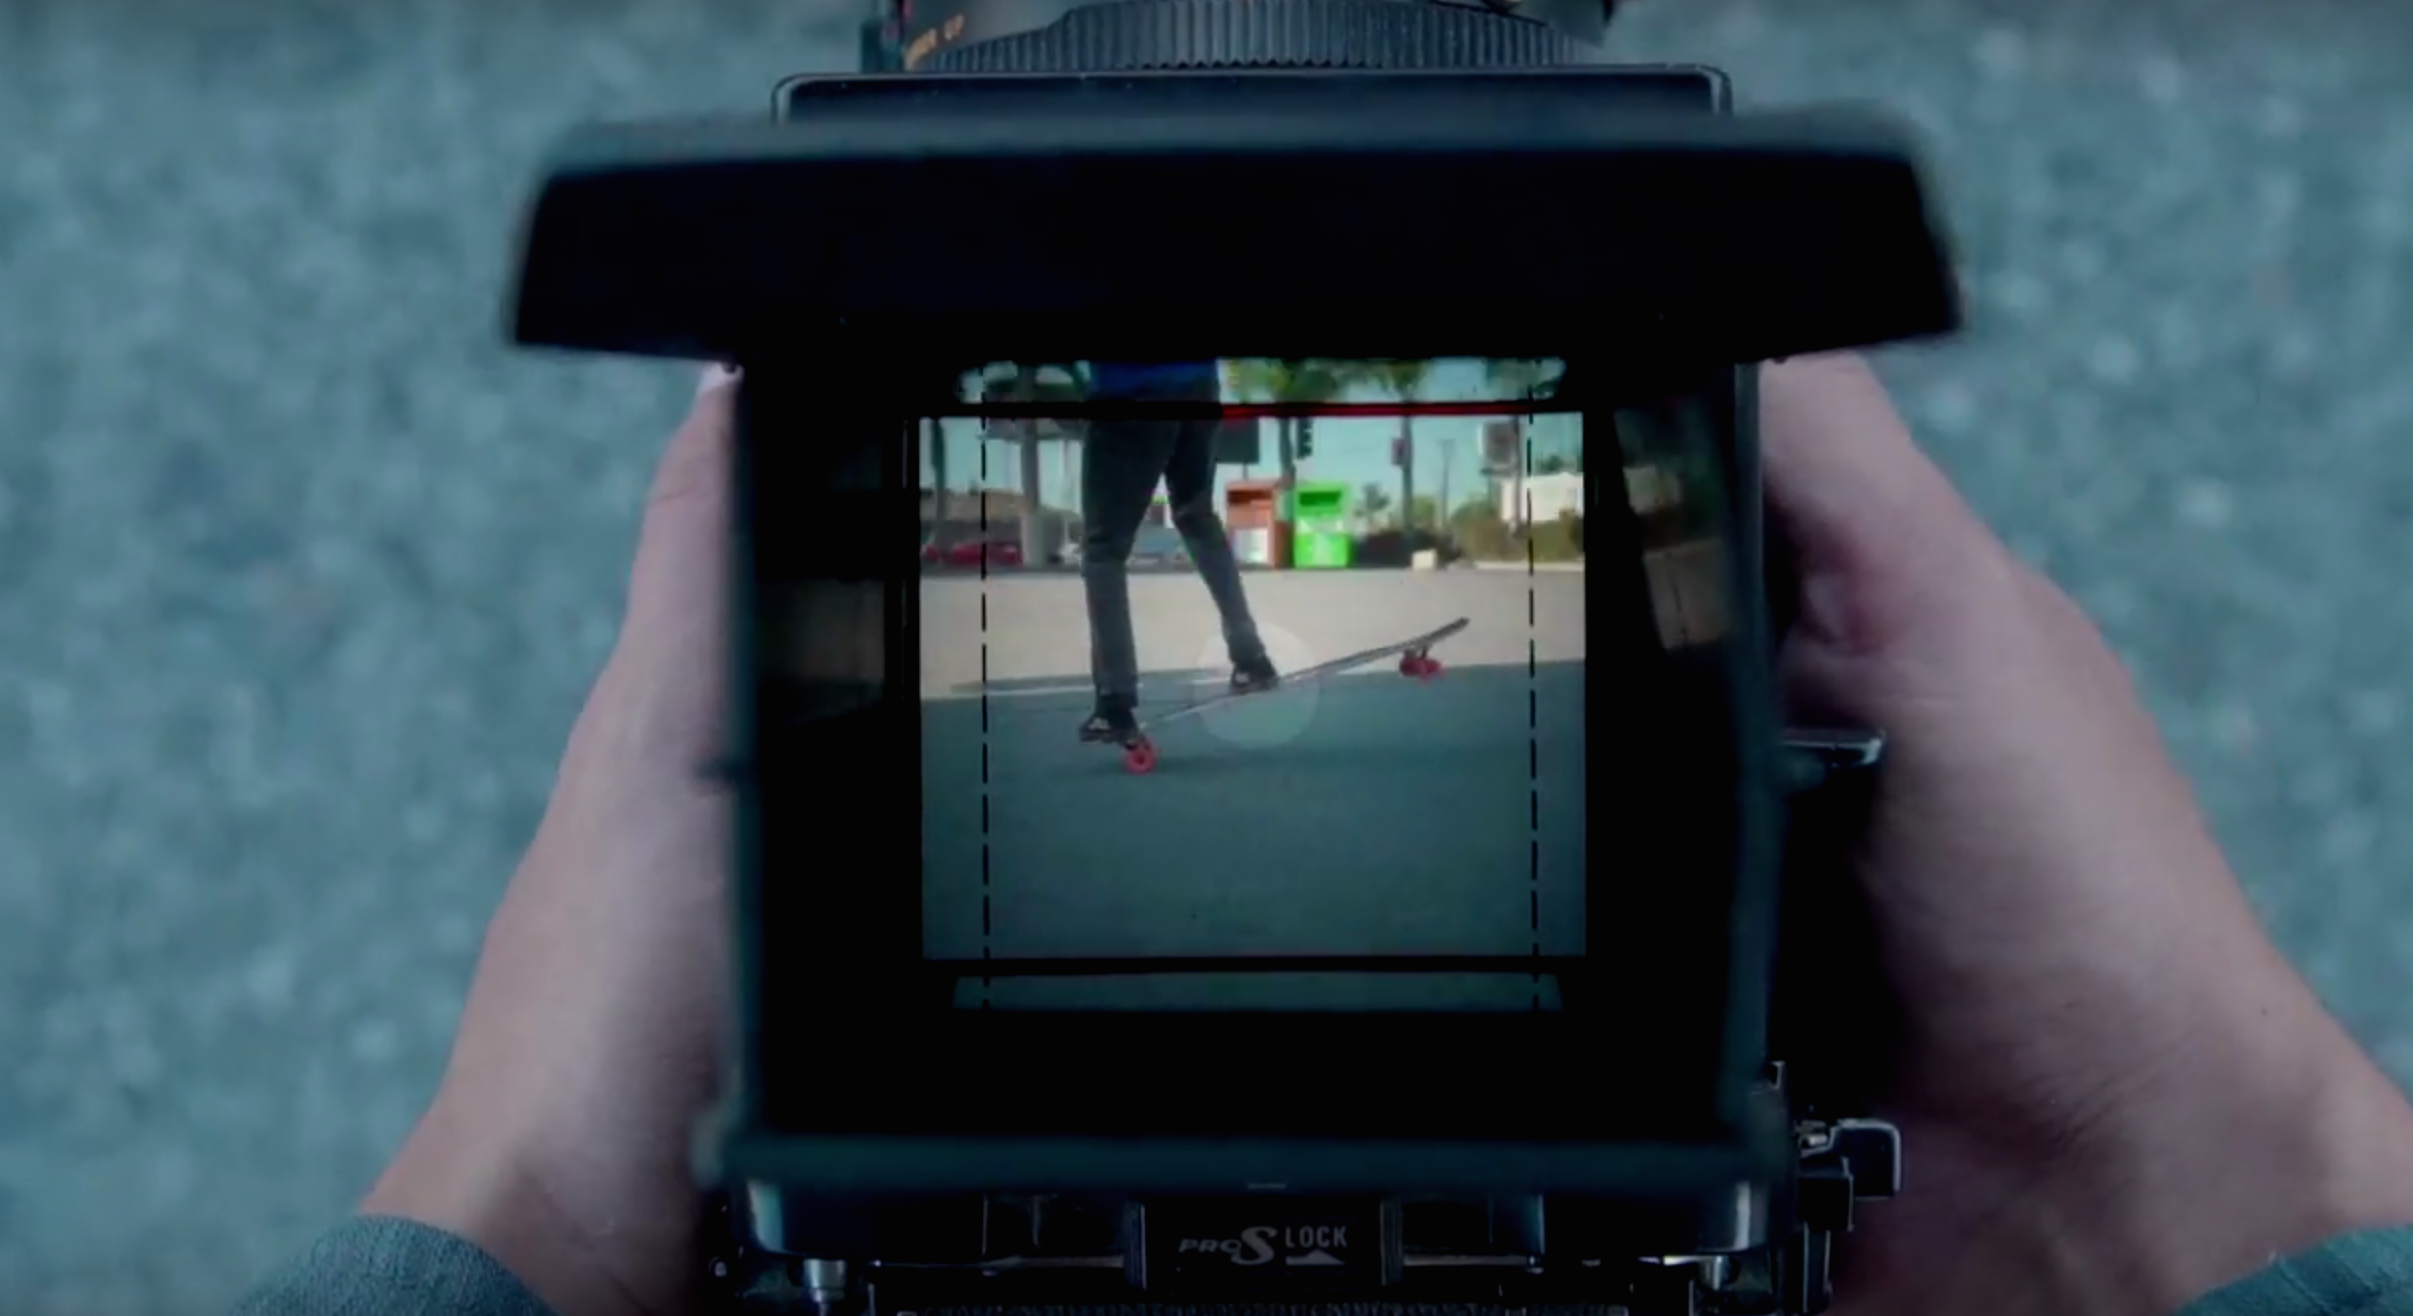 Skate Video through Mamiya camera